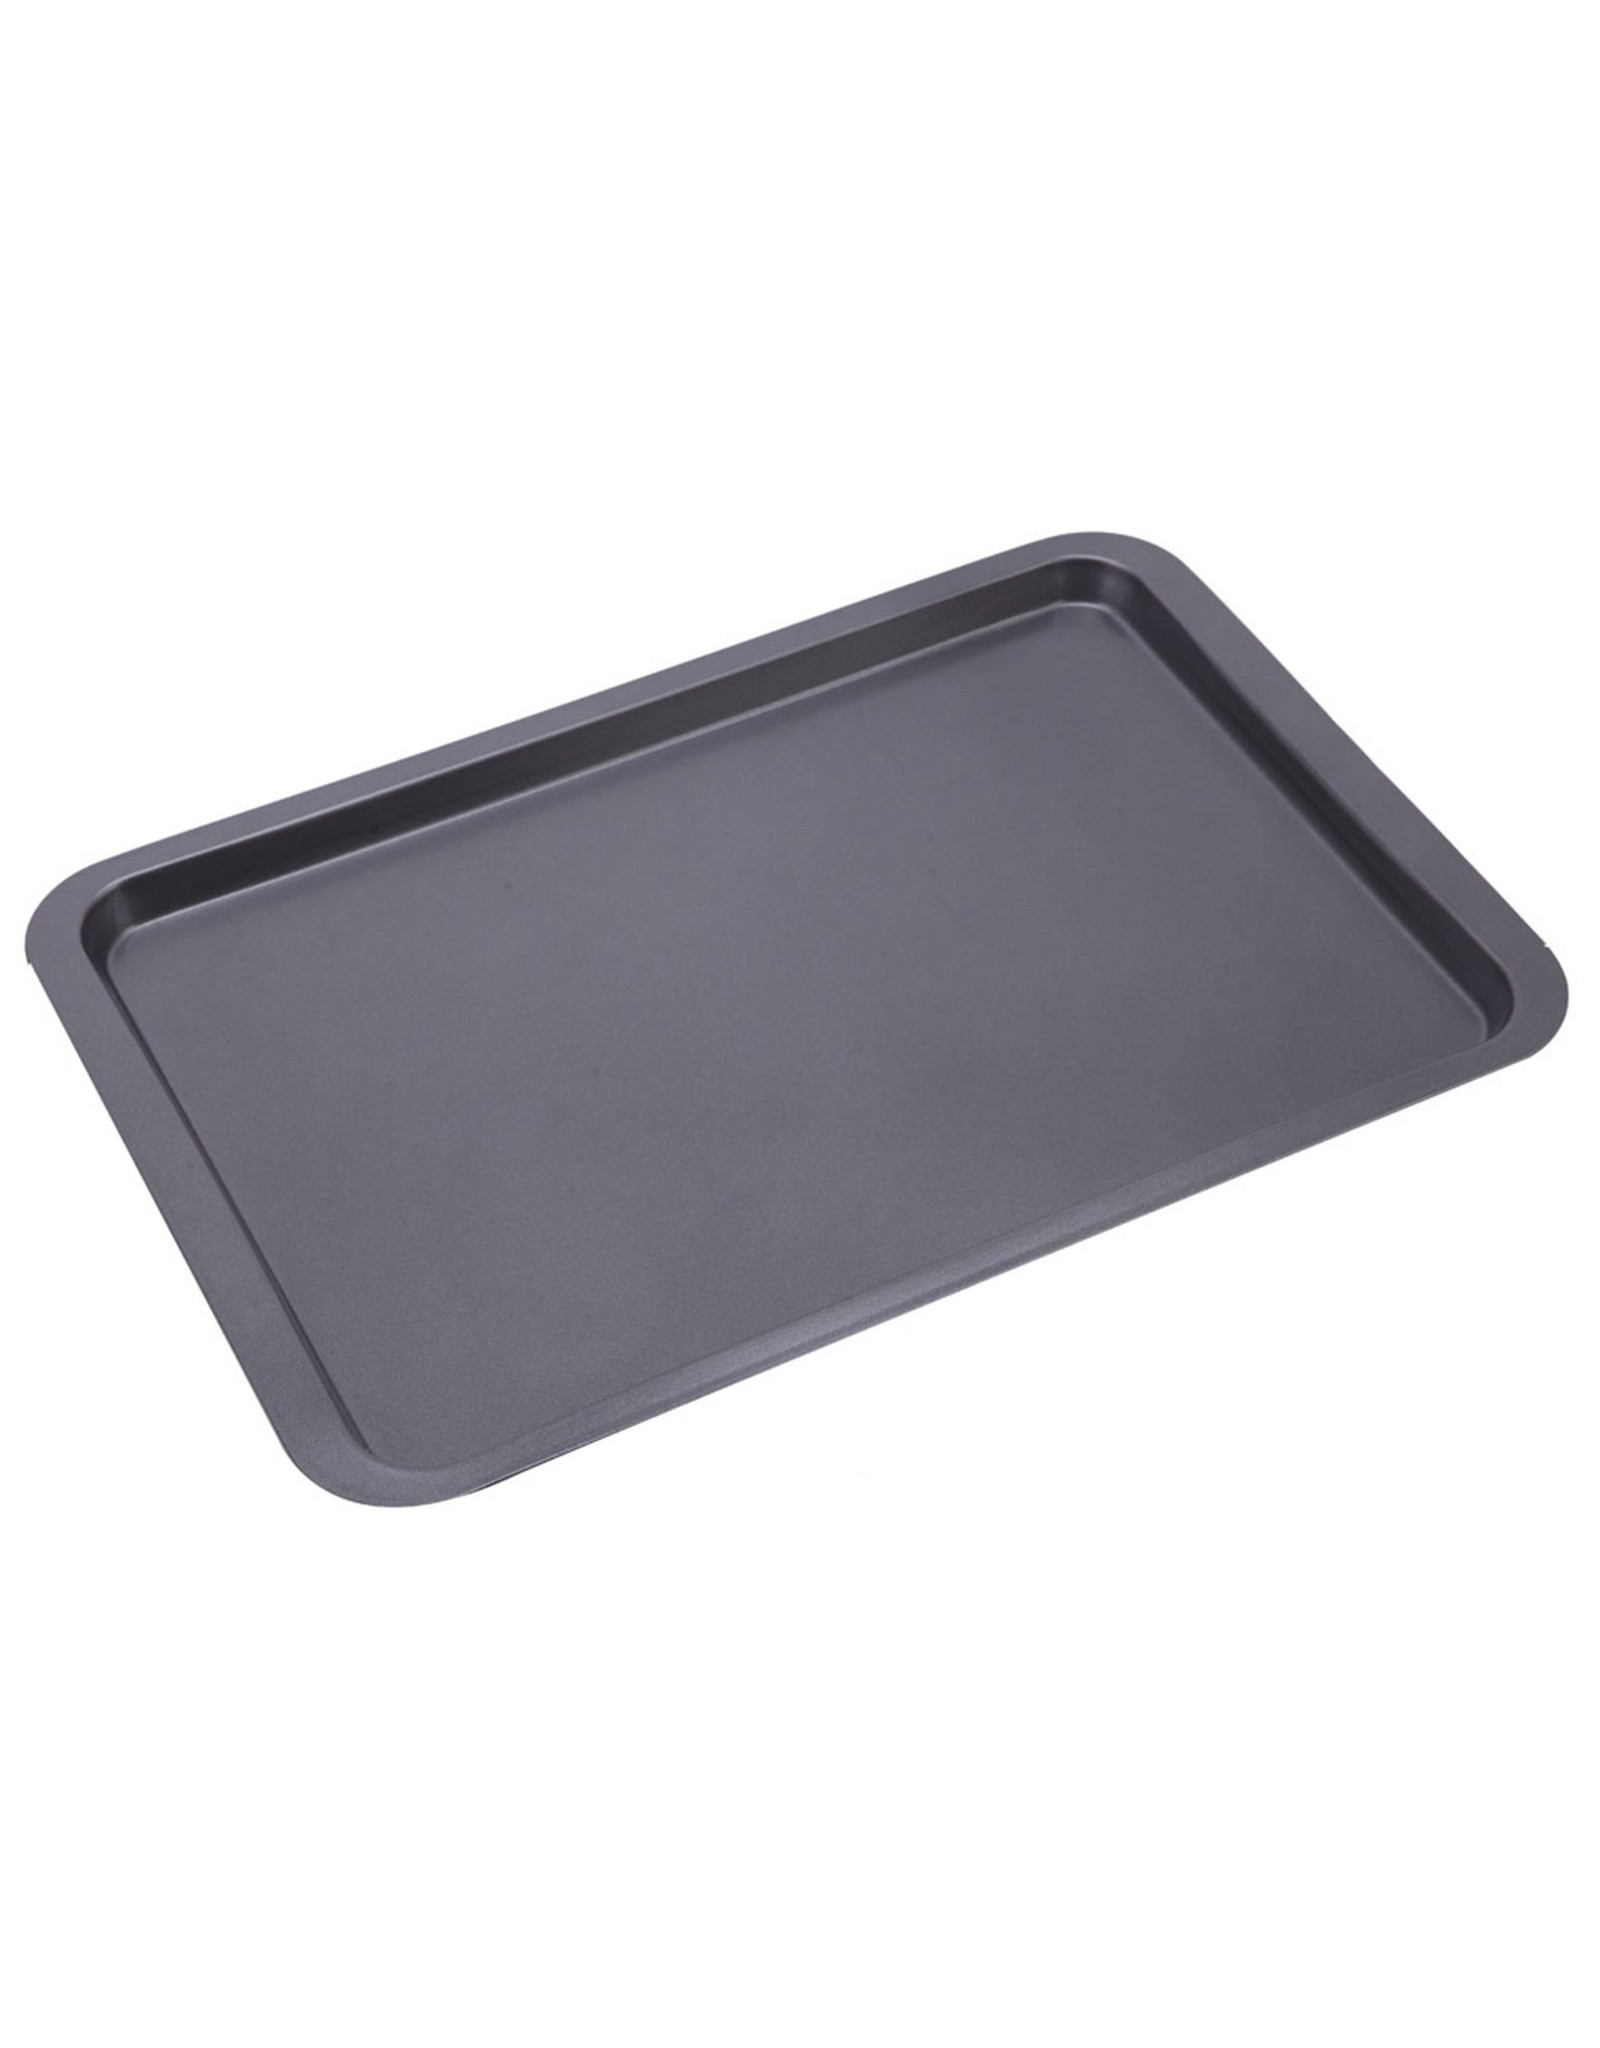 Non Stick Cookie Sheet 11.5x17